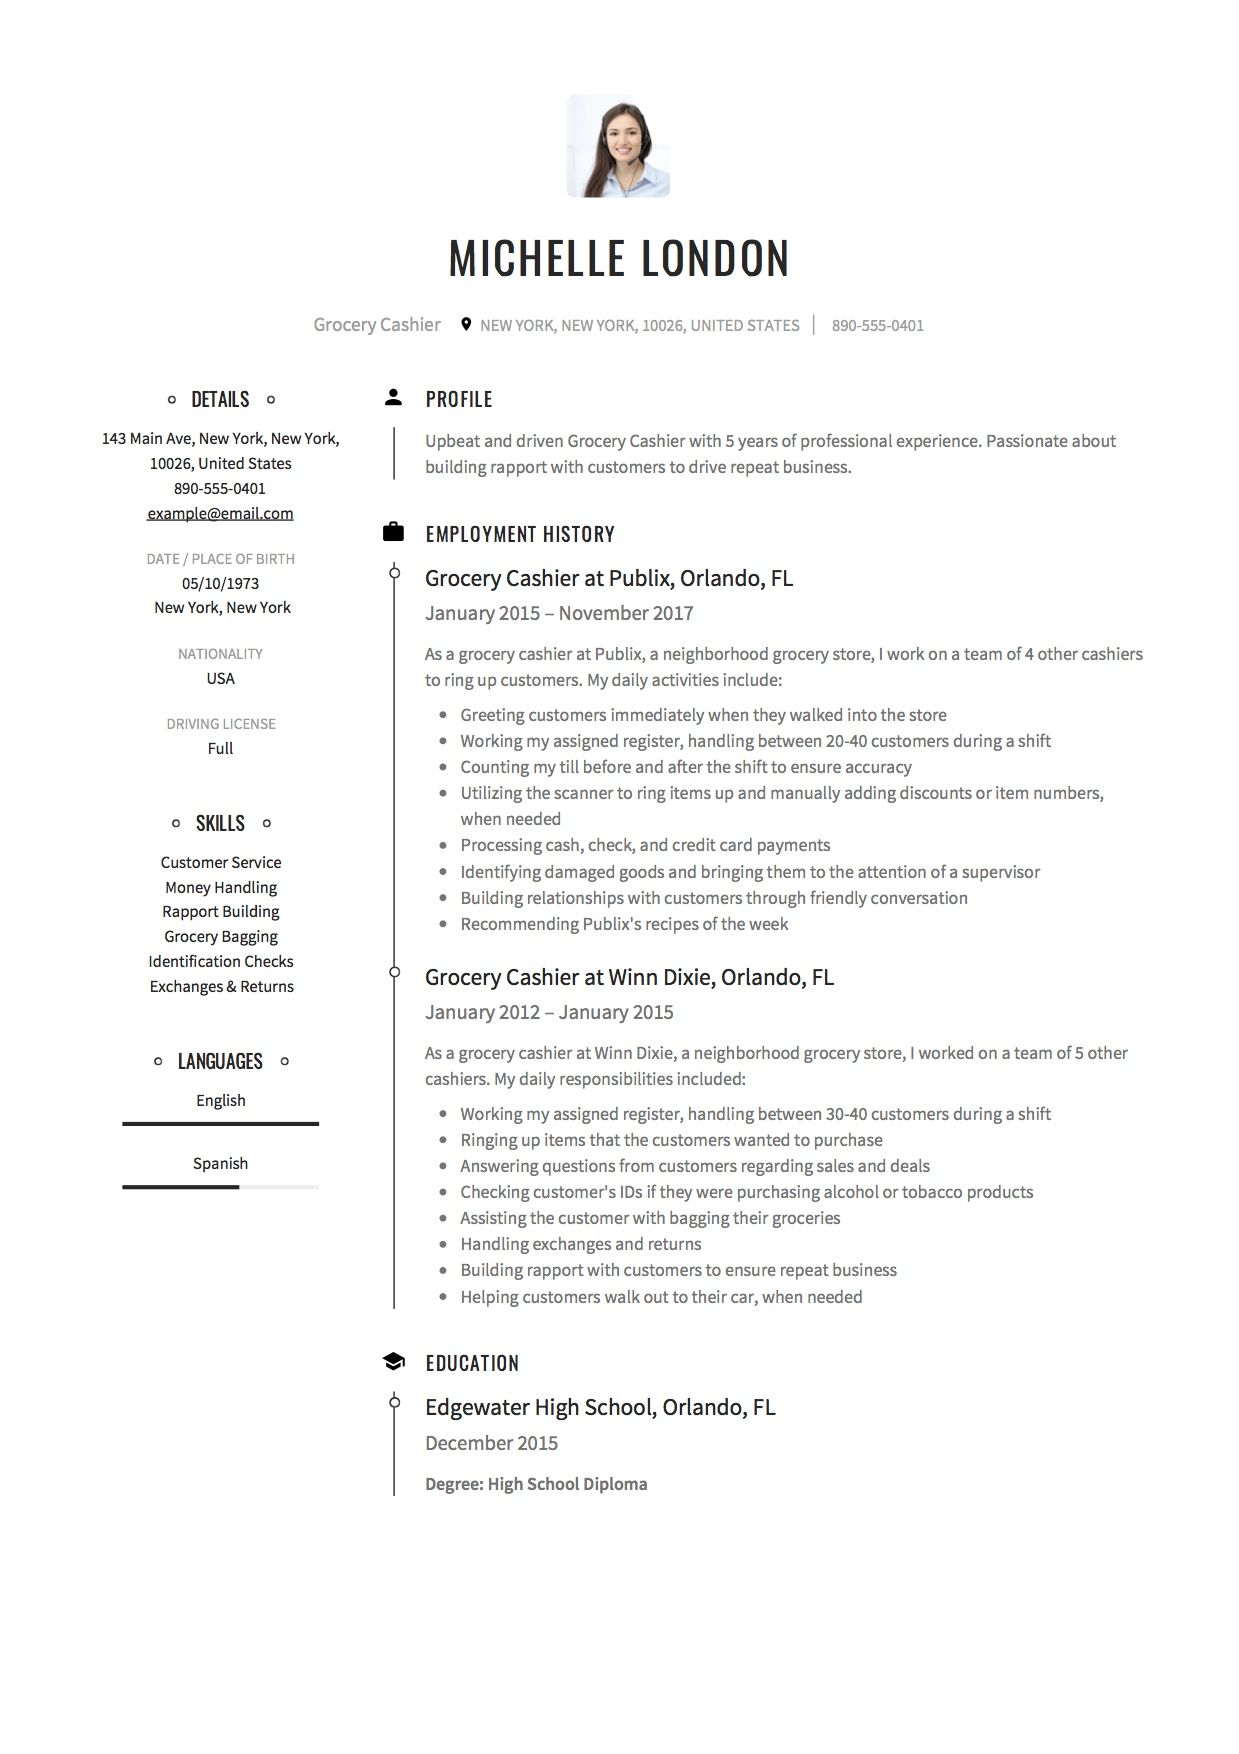 Grocery Cashier Resume Sample Free Download Example Resume Skills Resume Guide Job Resume Samples